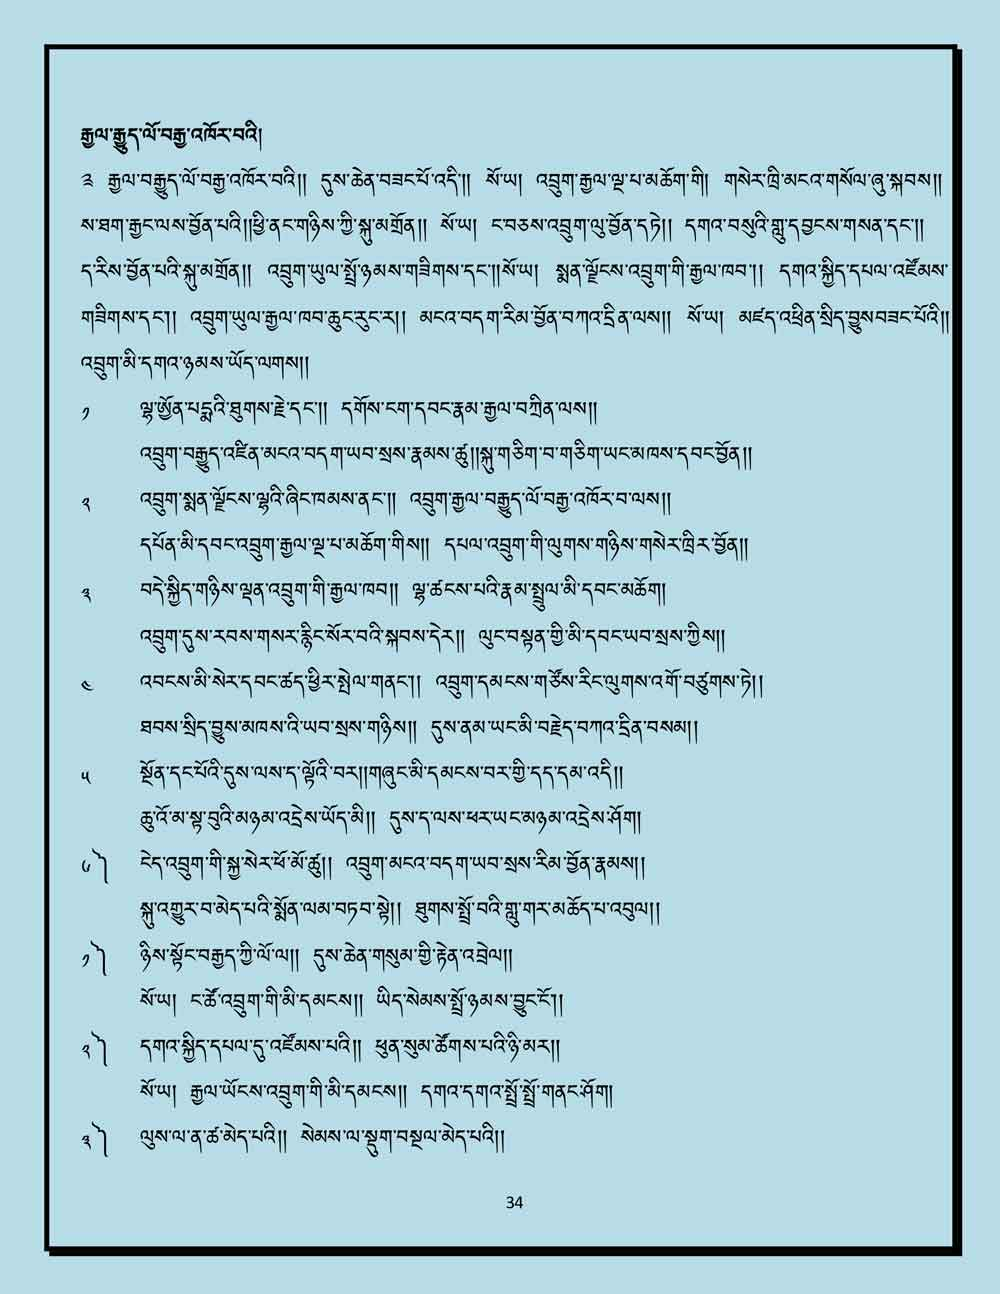 Ap-Tseten-Lyrics-34.jpg